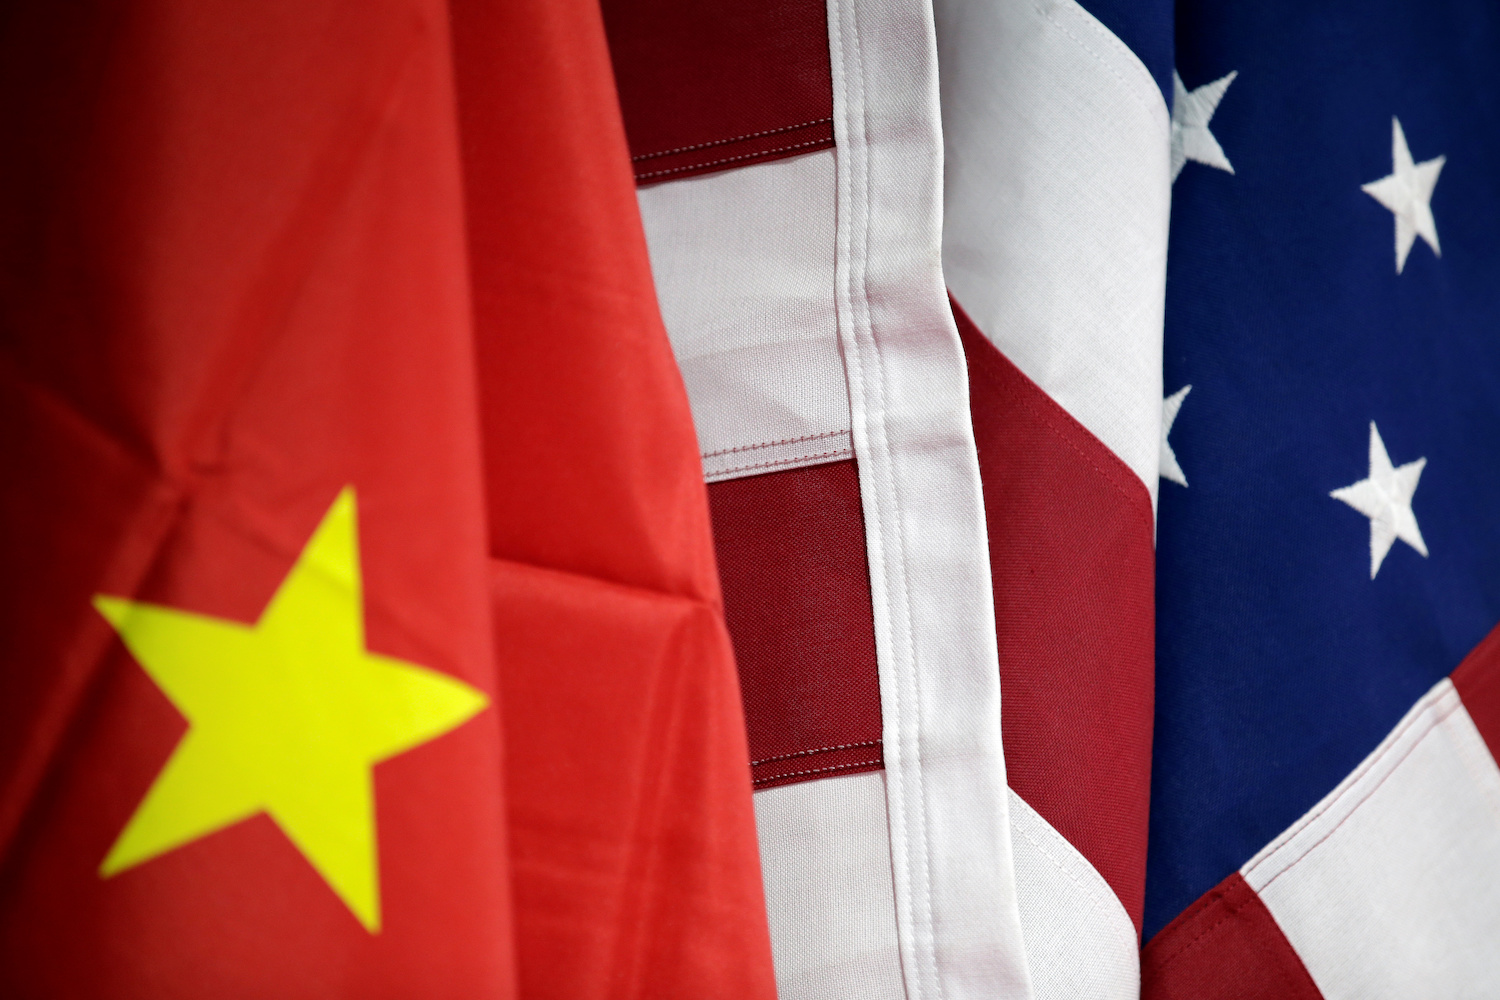 China-US market ties likely to deepen regardless of election